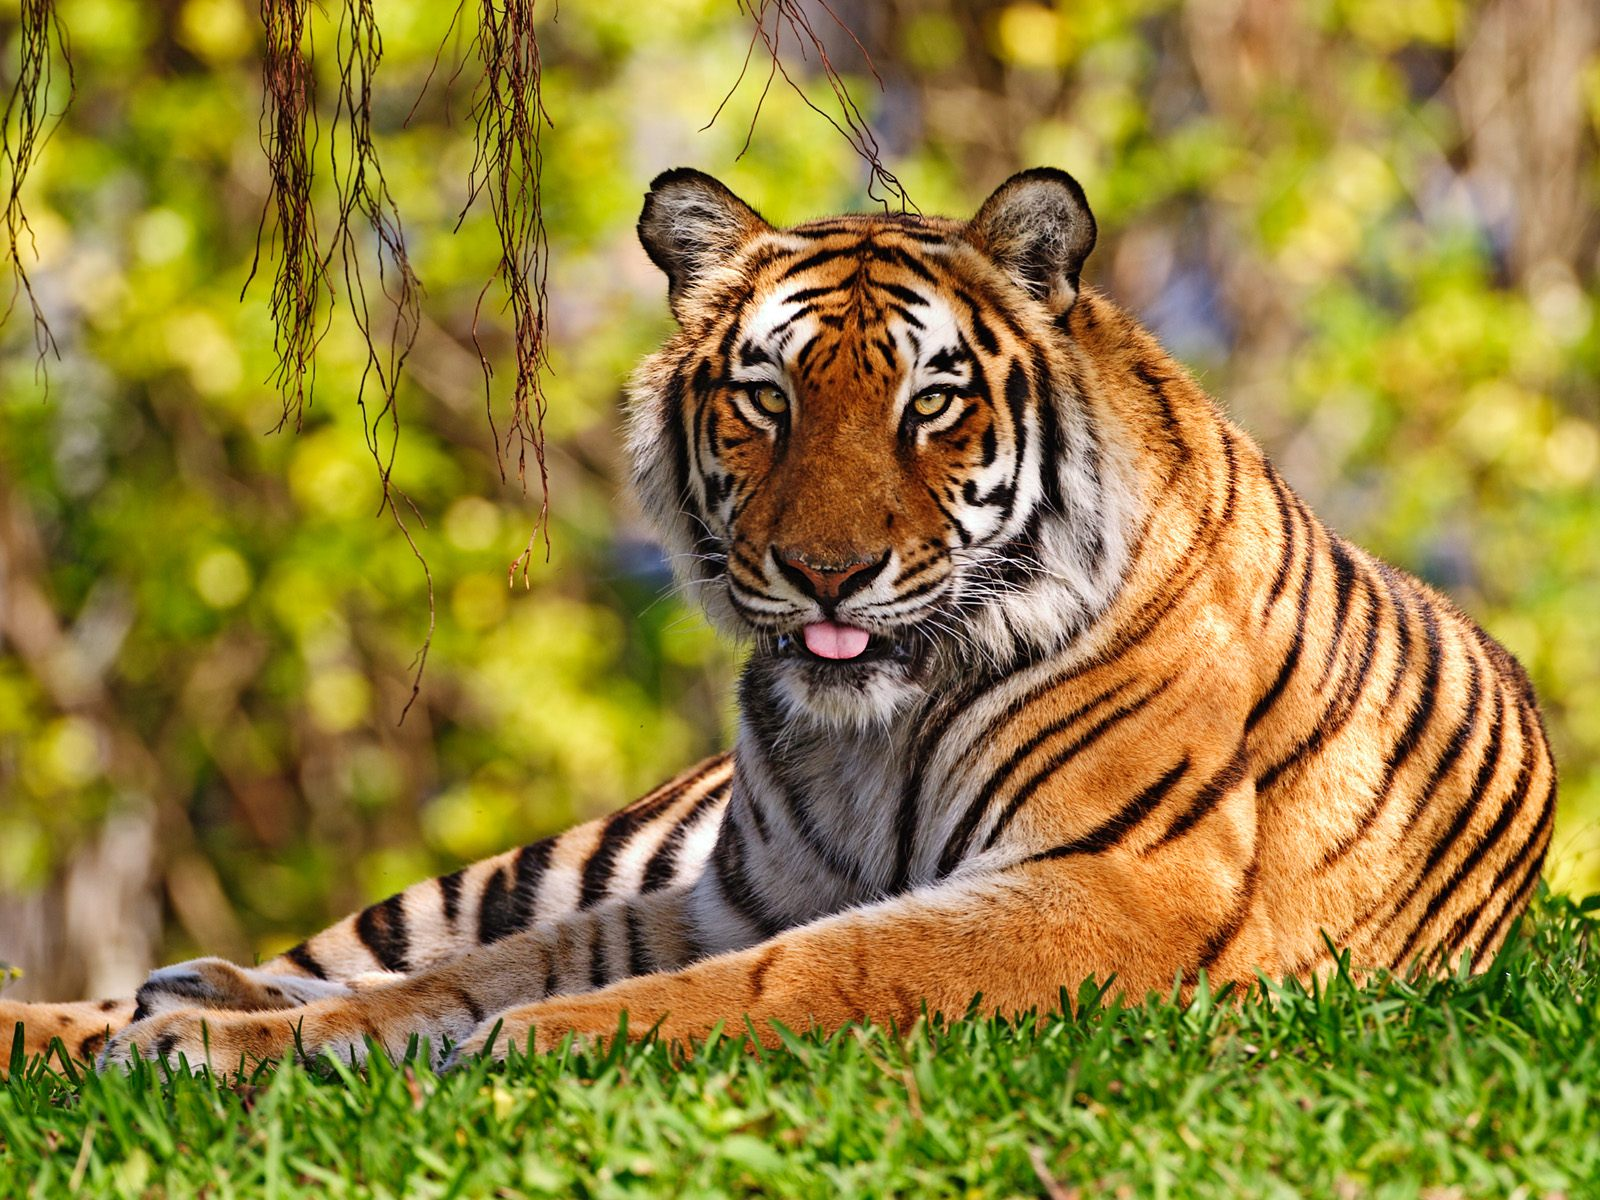 pictures top 10 tiger tiger wallpaper top ten wild animal 1600x1200